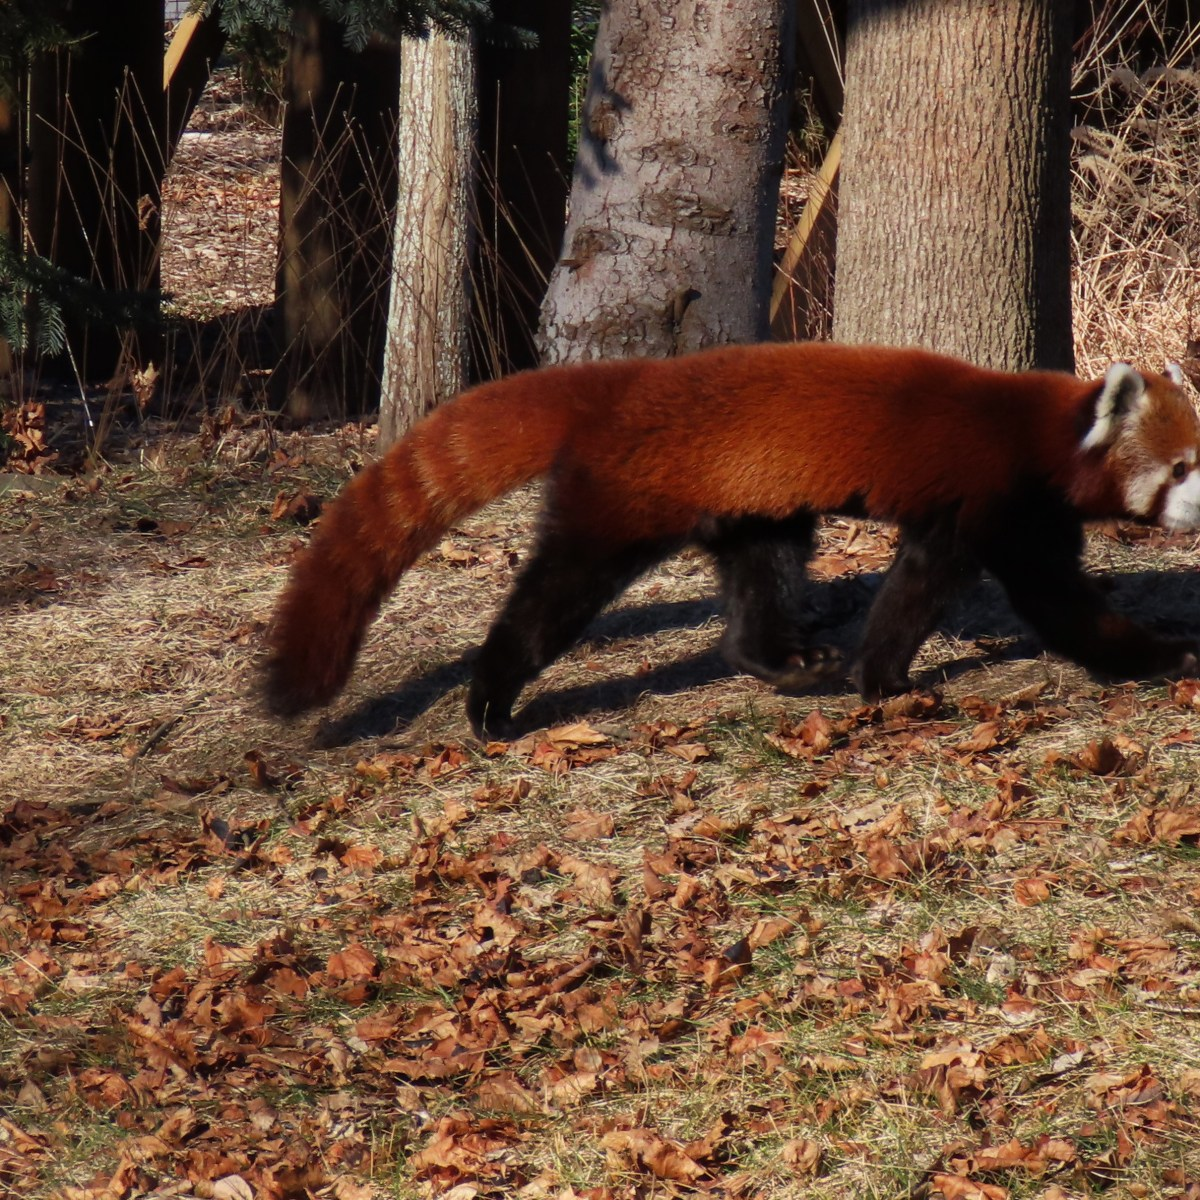 A red panda walks along a grassy area with trees